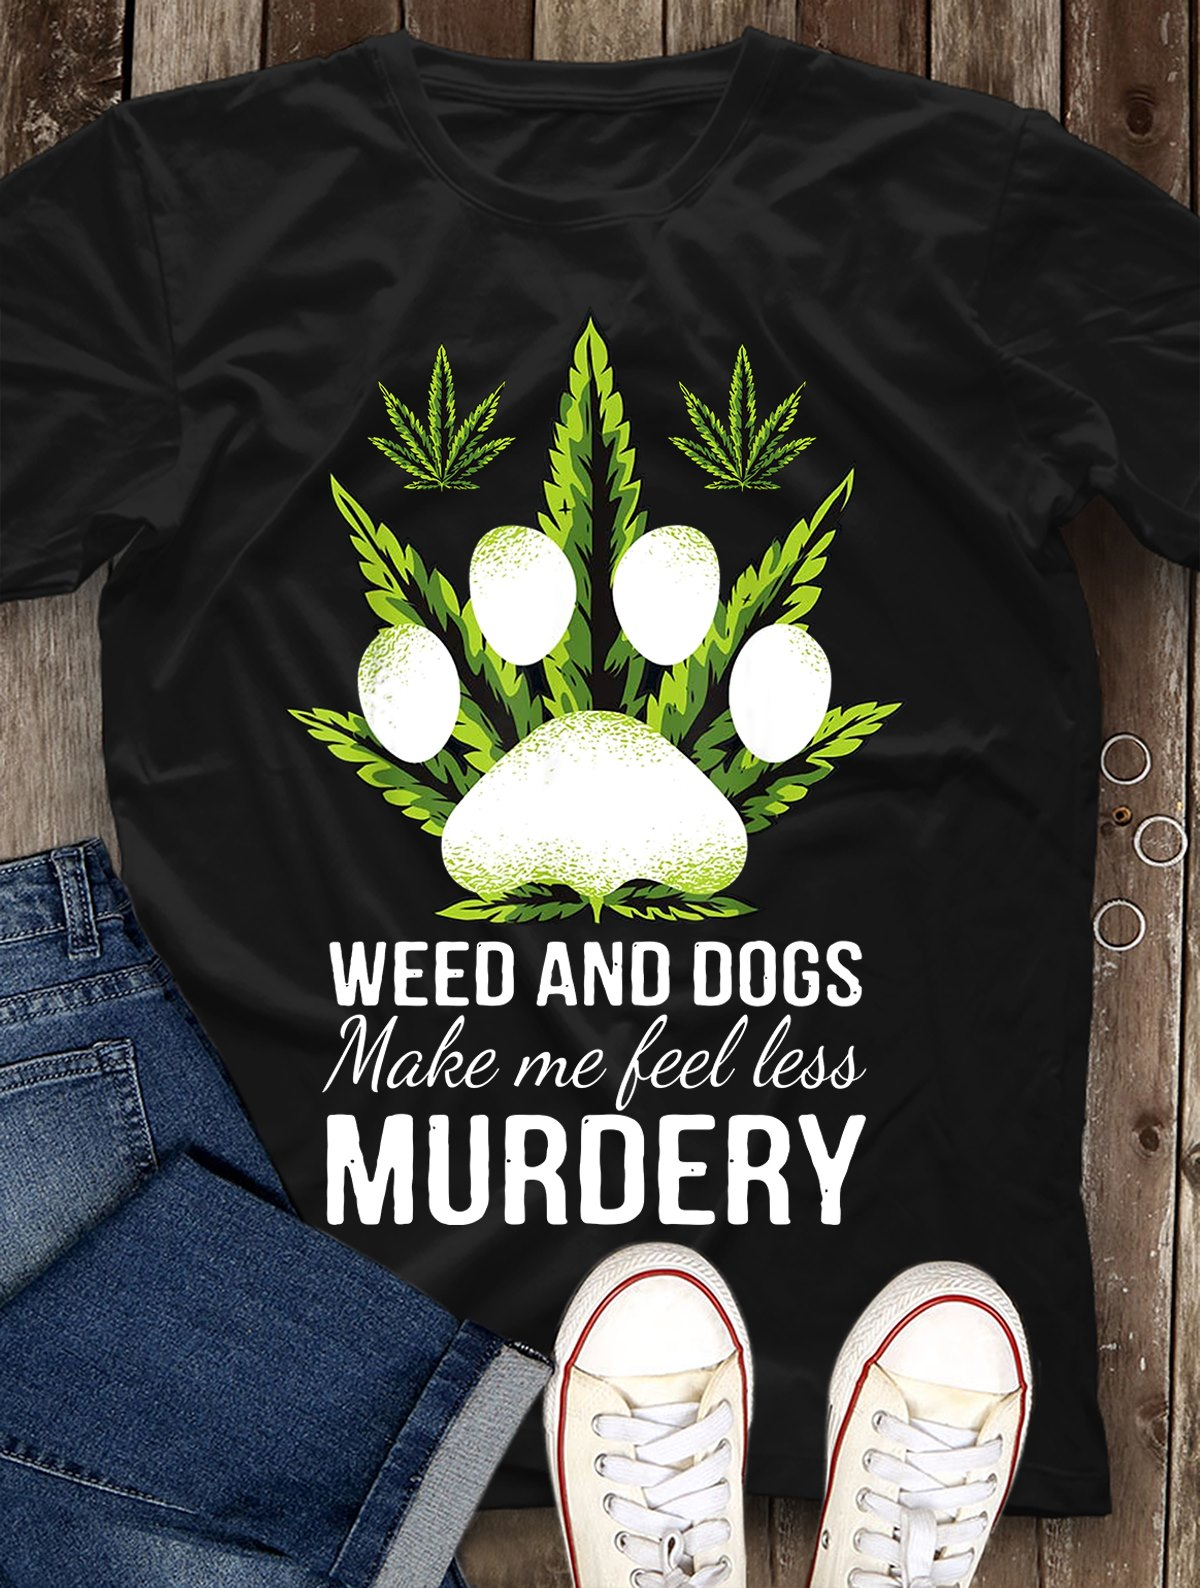 Weed And Dogs Shirt Make Me Less Murdery